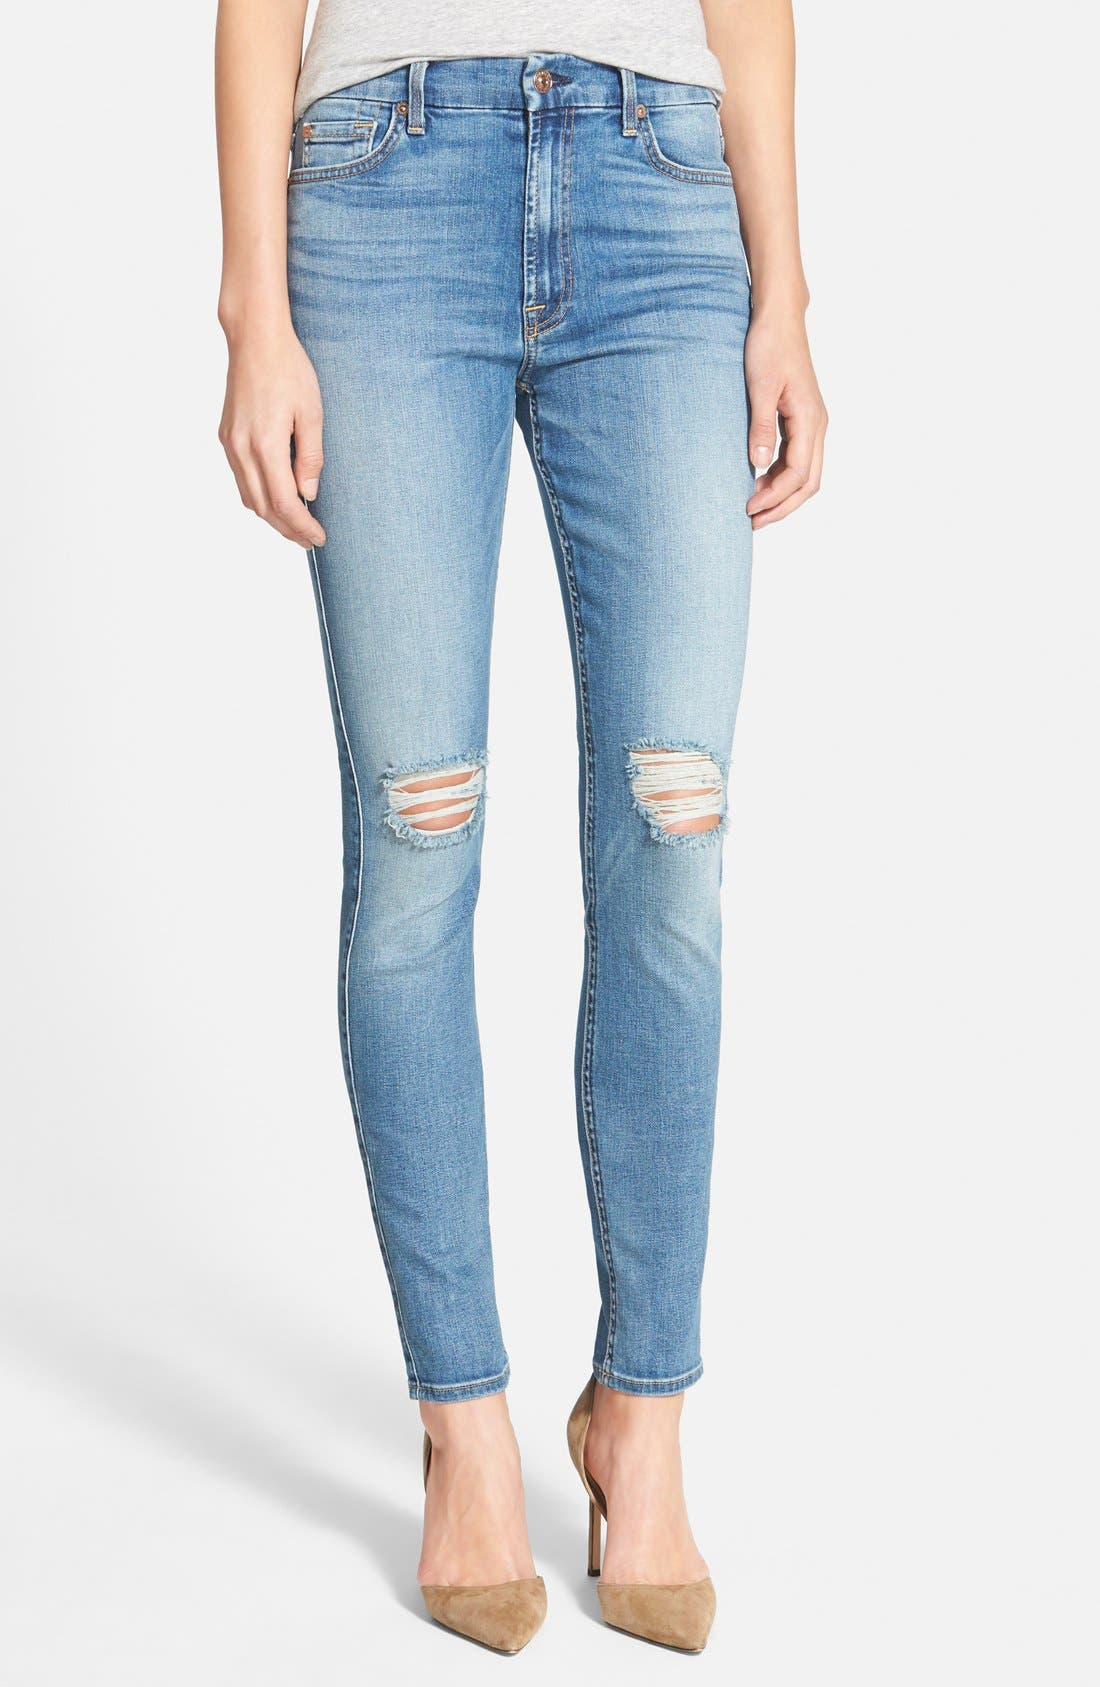 Alternate Image 1 Selected - 7 For All Mankind® High Rise Skinny Jeans (Slone Heritage Medium light 2)